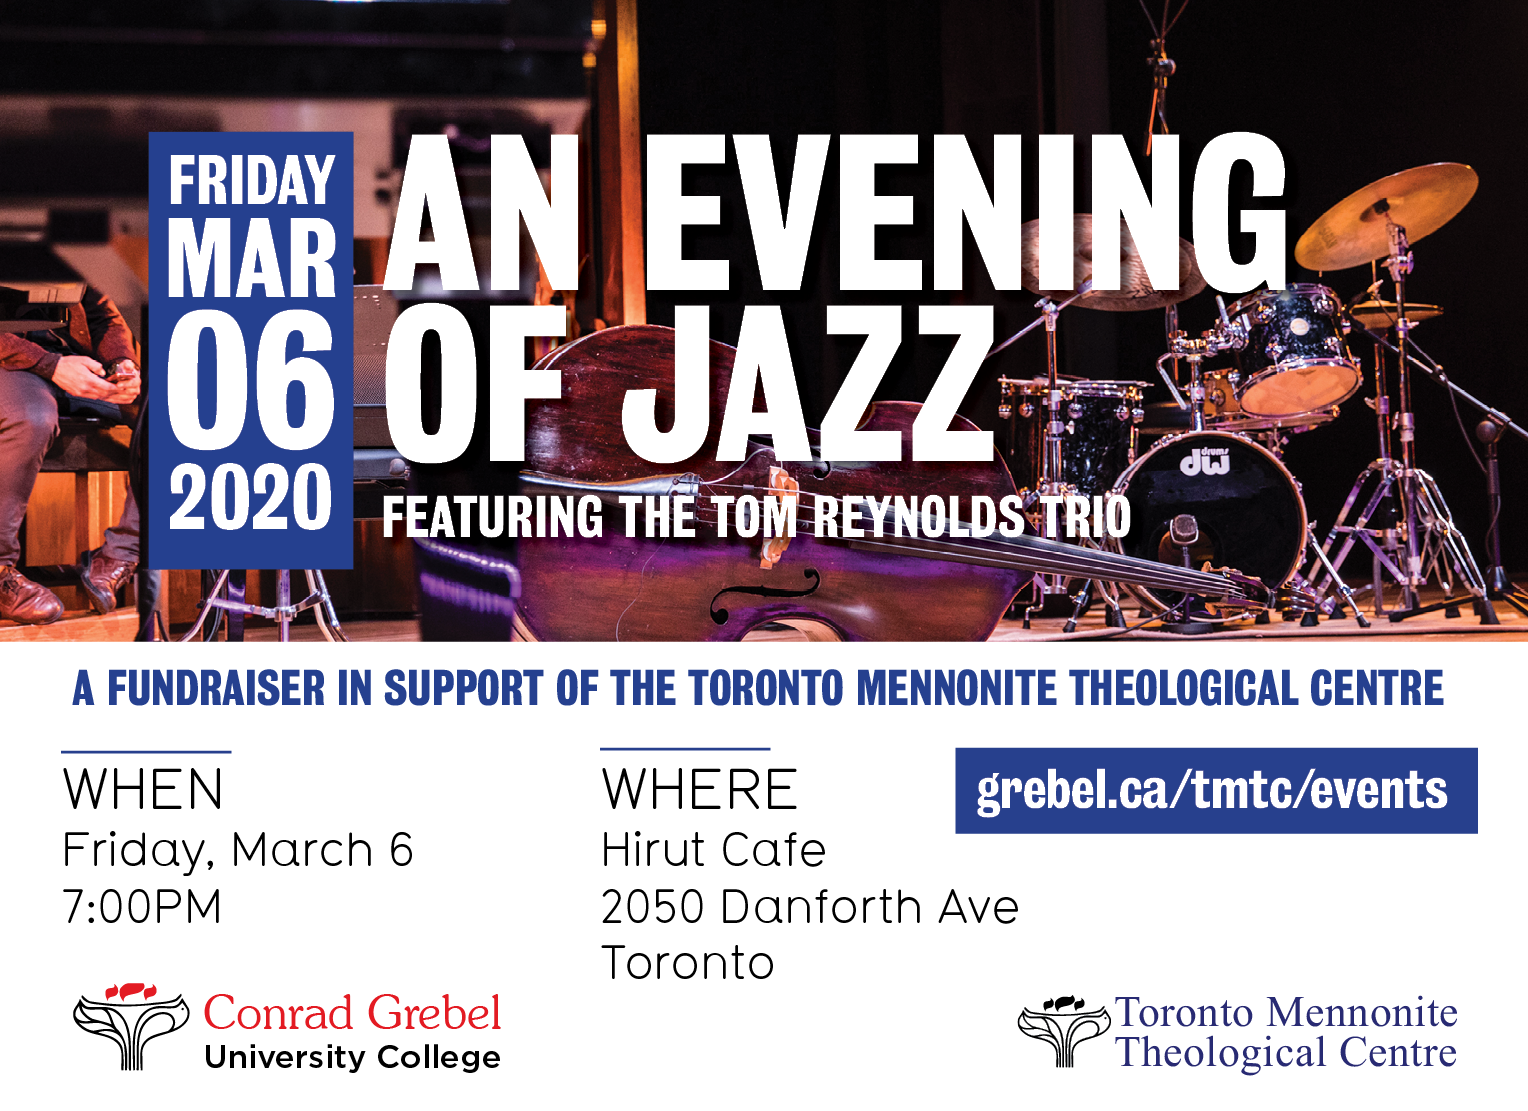 An evening of Jazz in support of TMTC fundraiser invitation